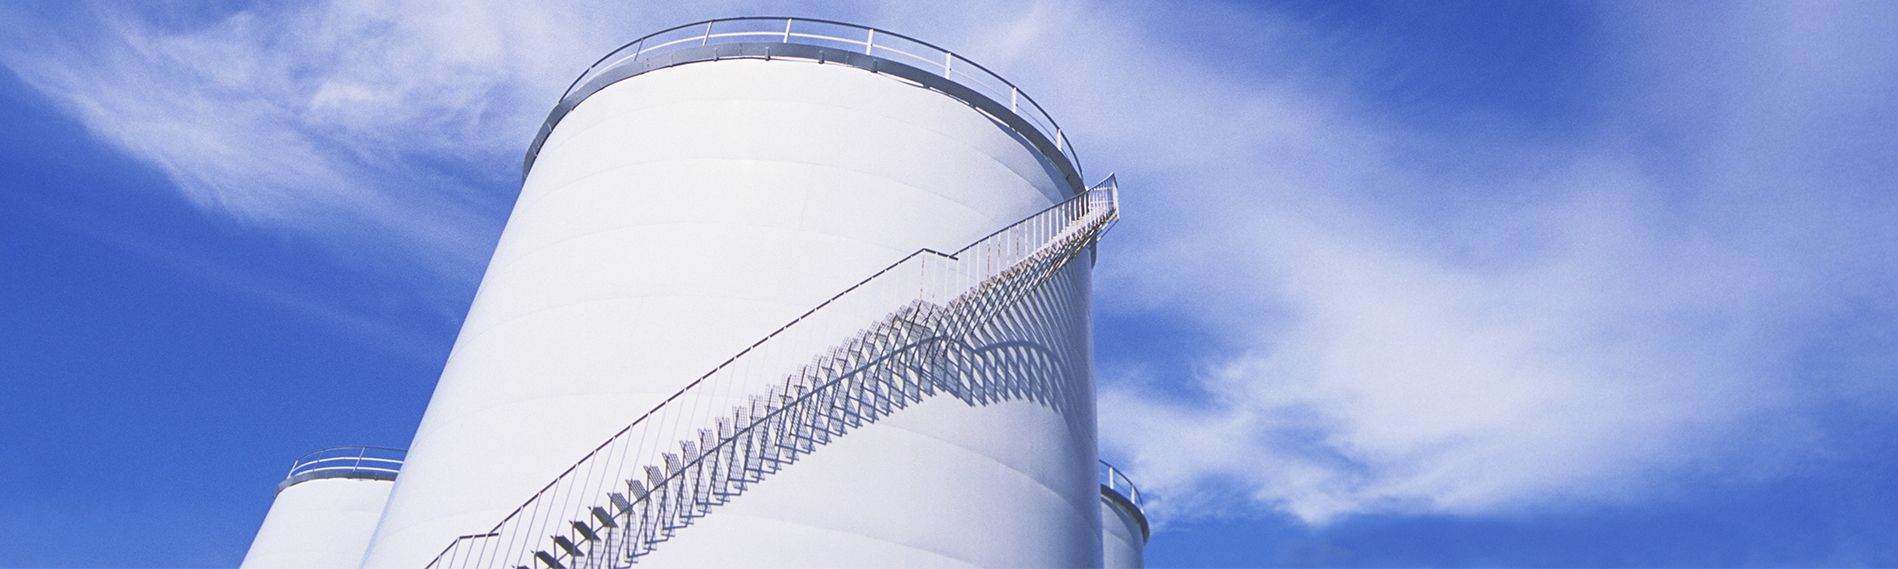 Tank Degassing & Vessel Degassing Services | Envent Corporation